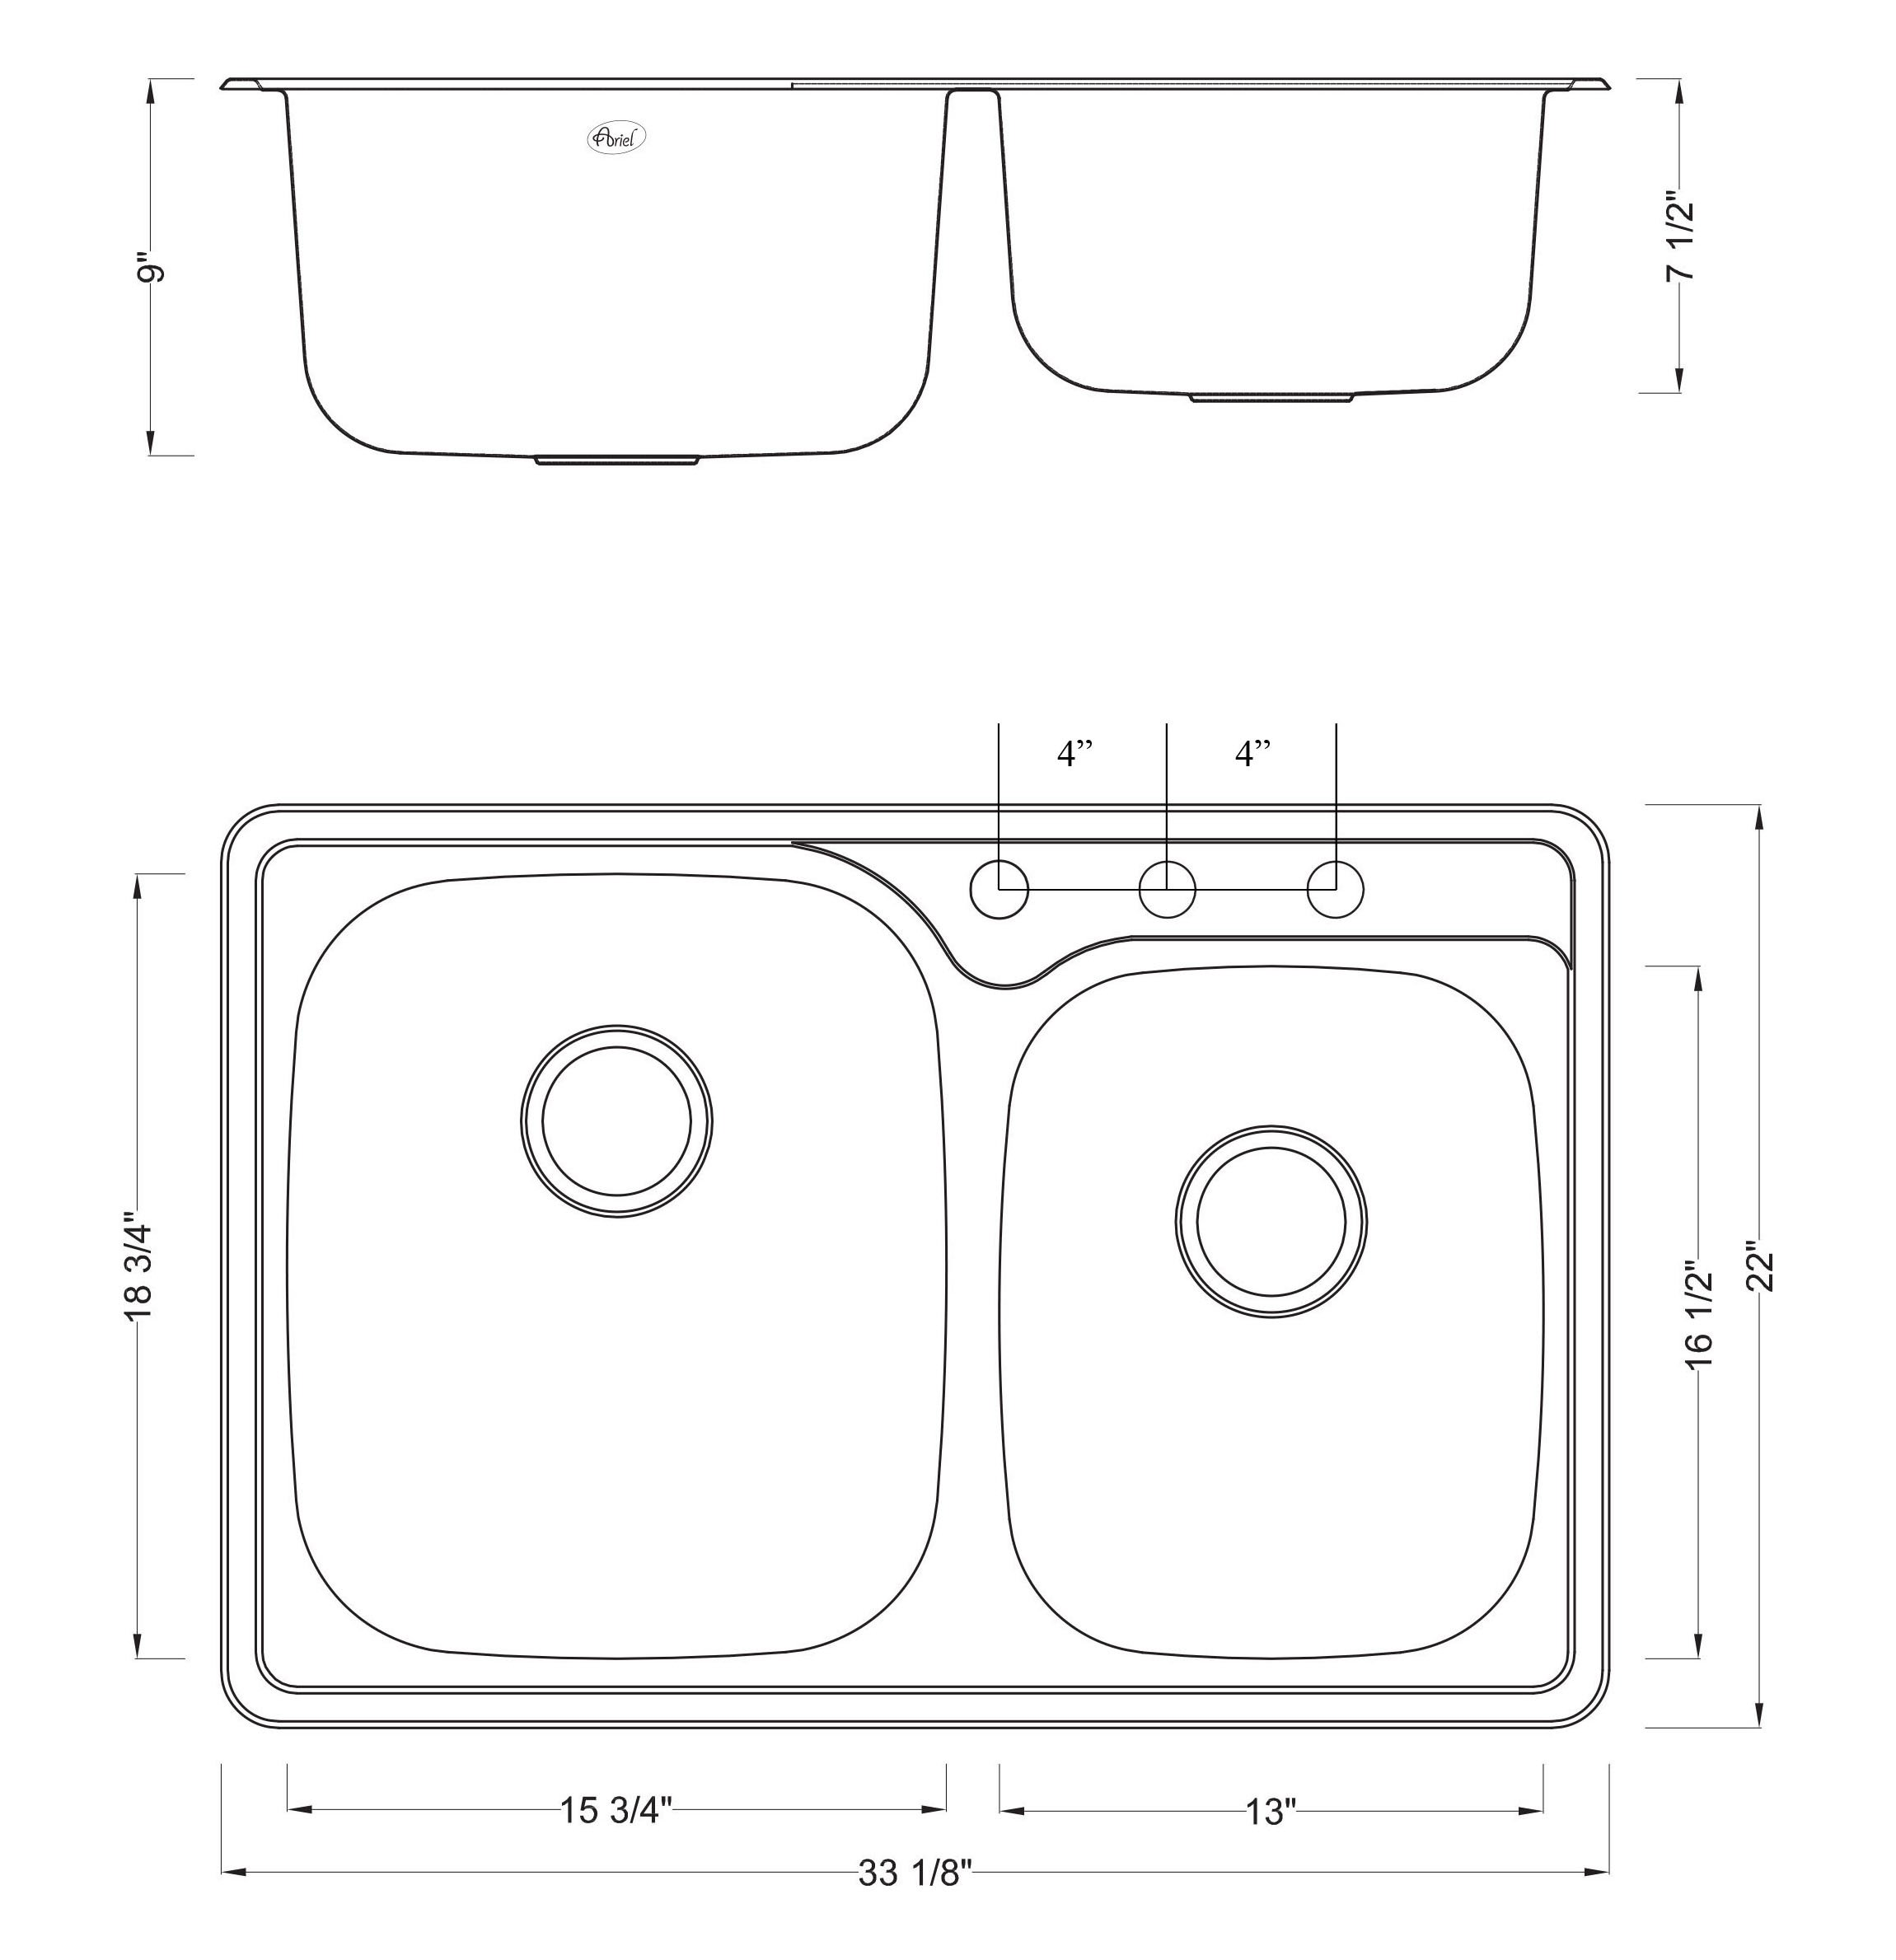 33 Inch Top-mount / Drop-in Stainless Steel Double Bowl Kitchen Sink - 18 Gauge with Deluxe Liift Out Strainer